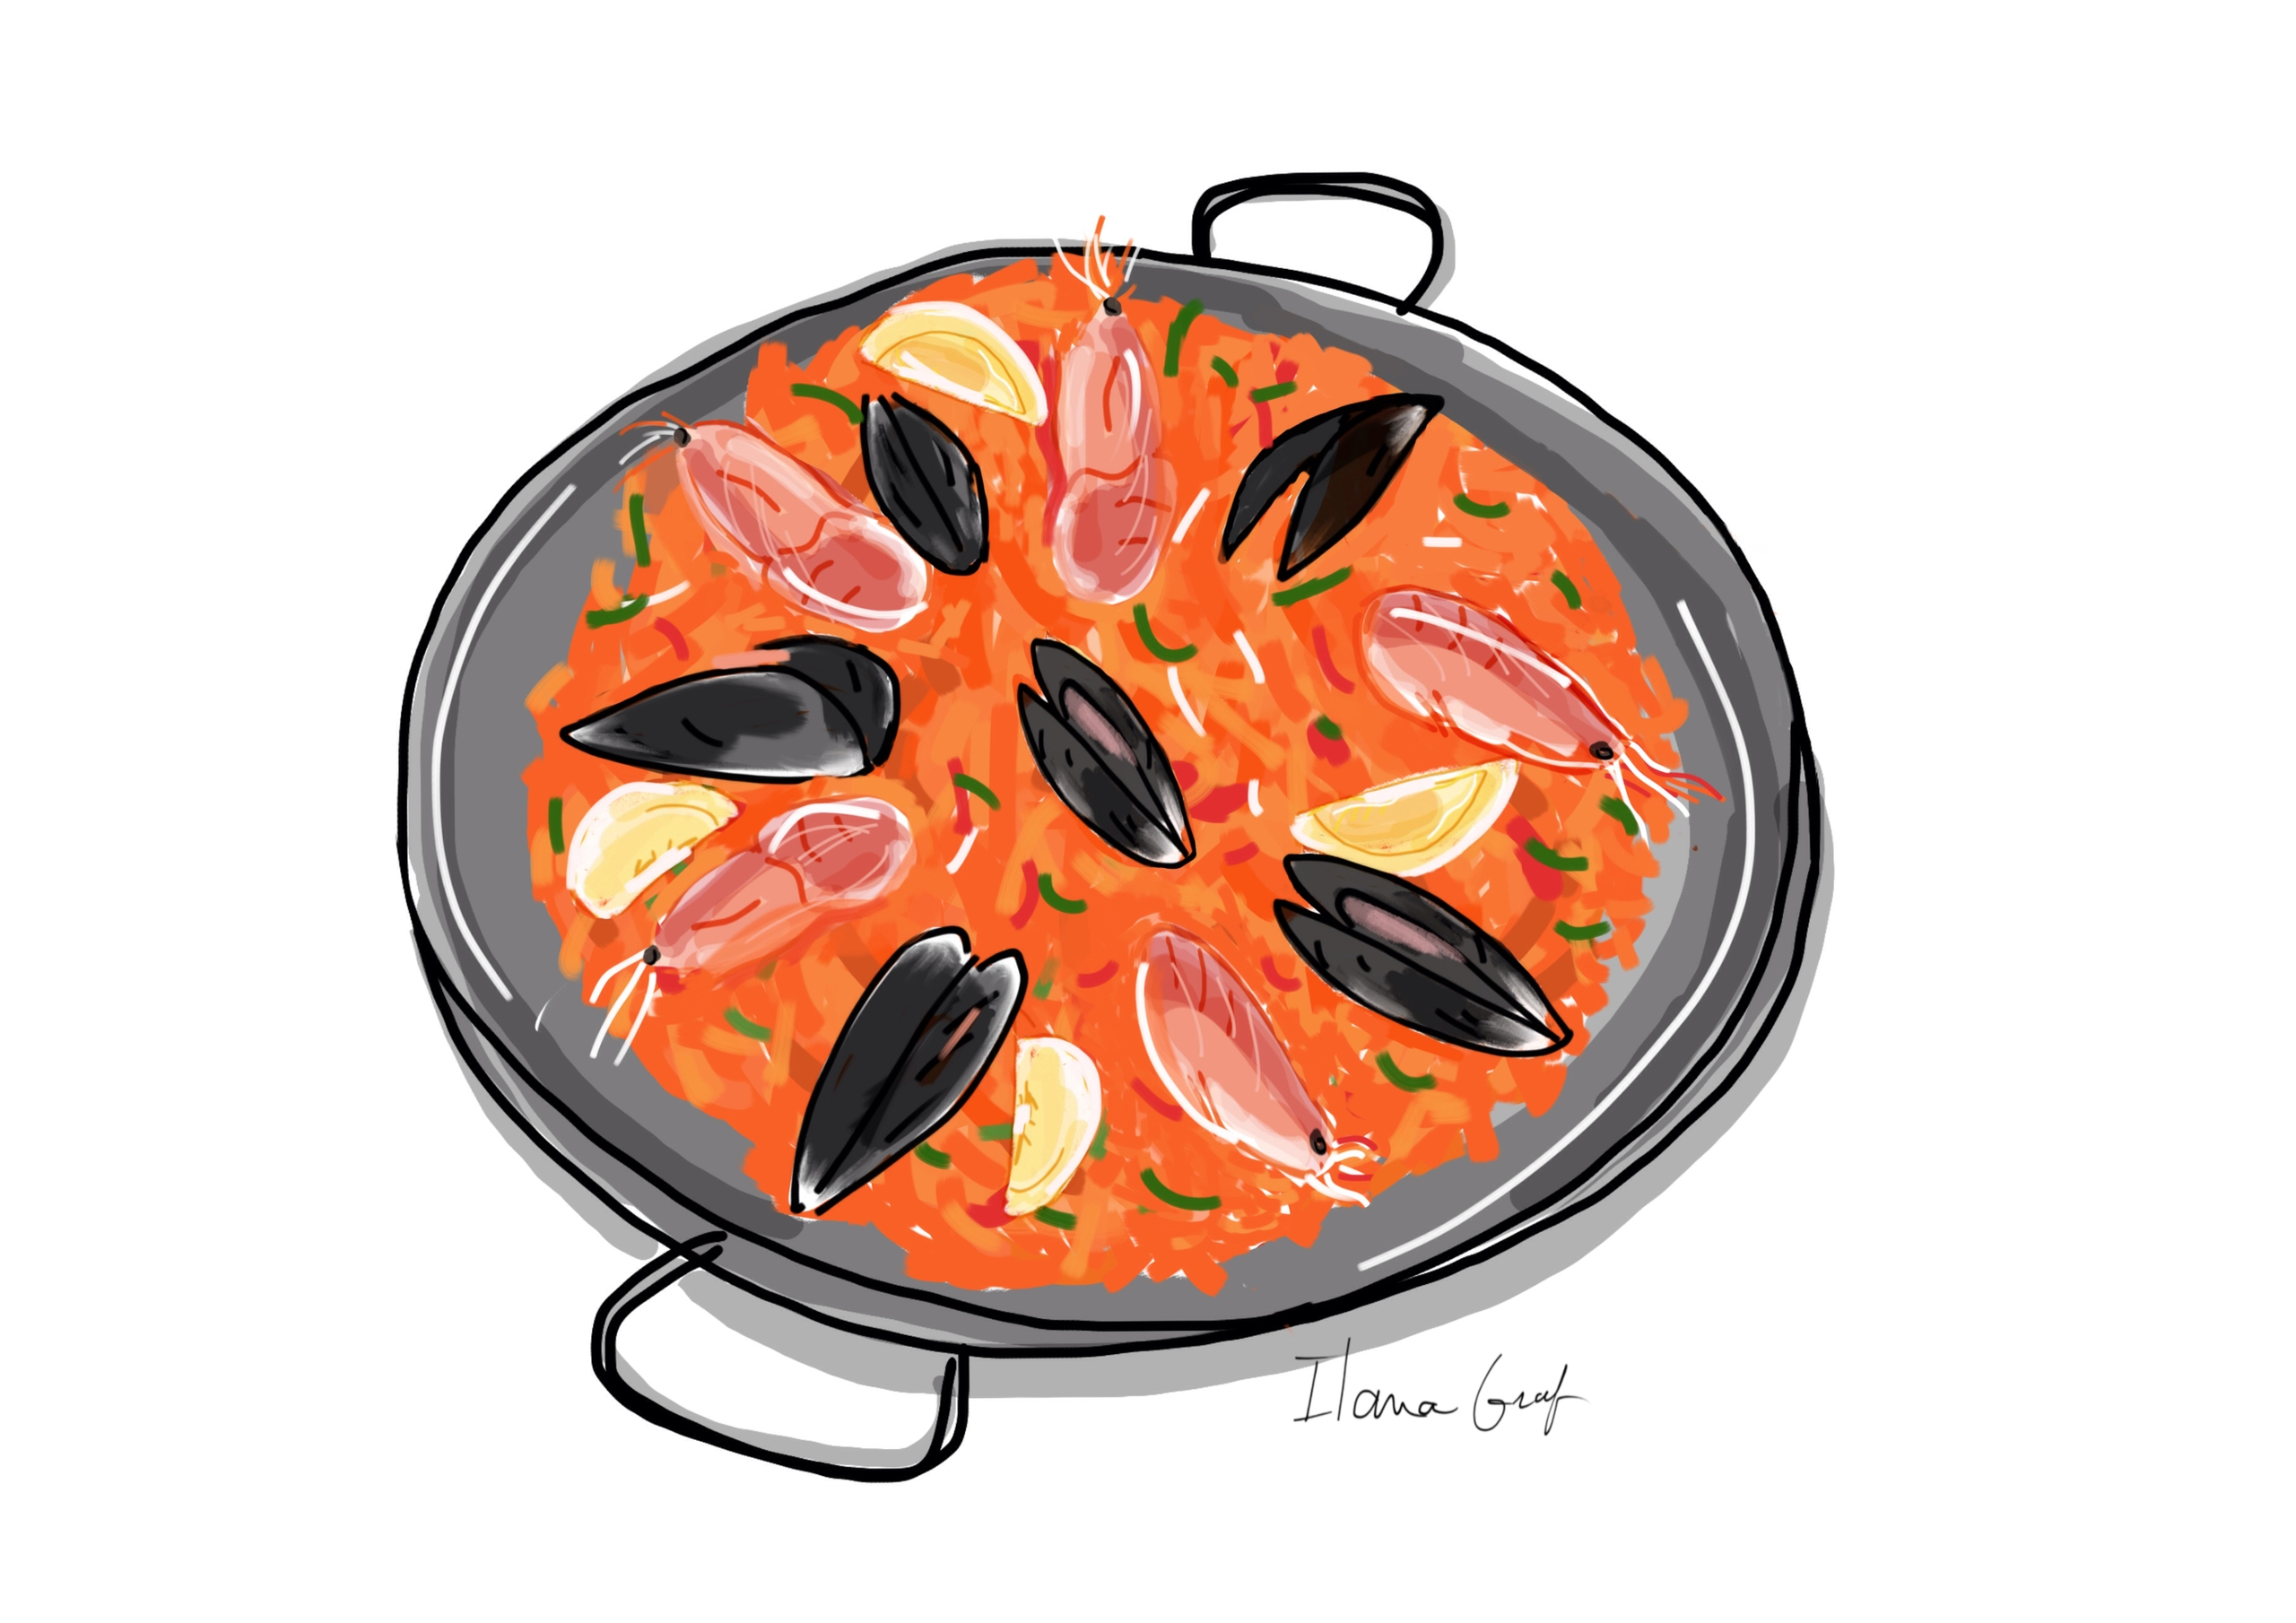 spanish food paella - illustration - ilanagraf | ello